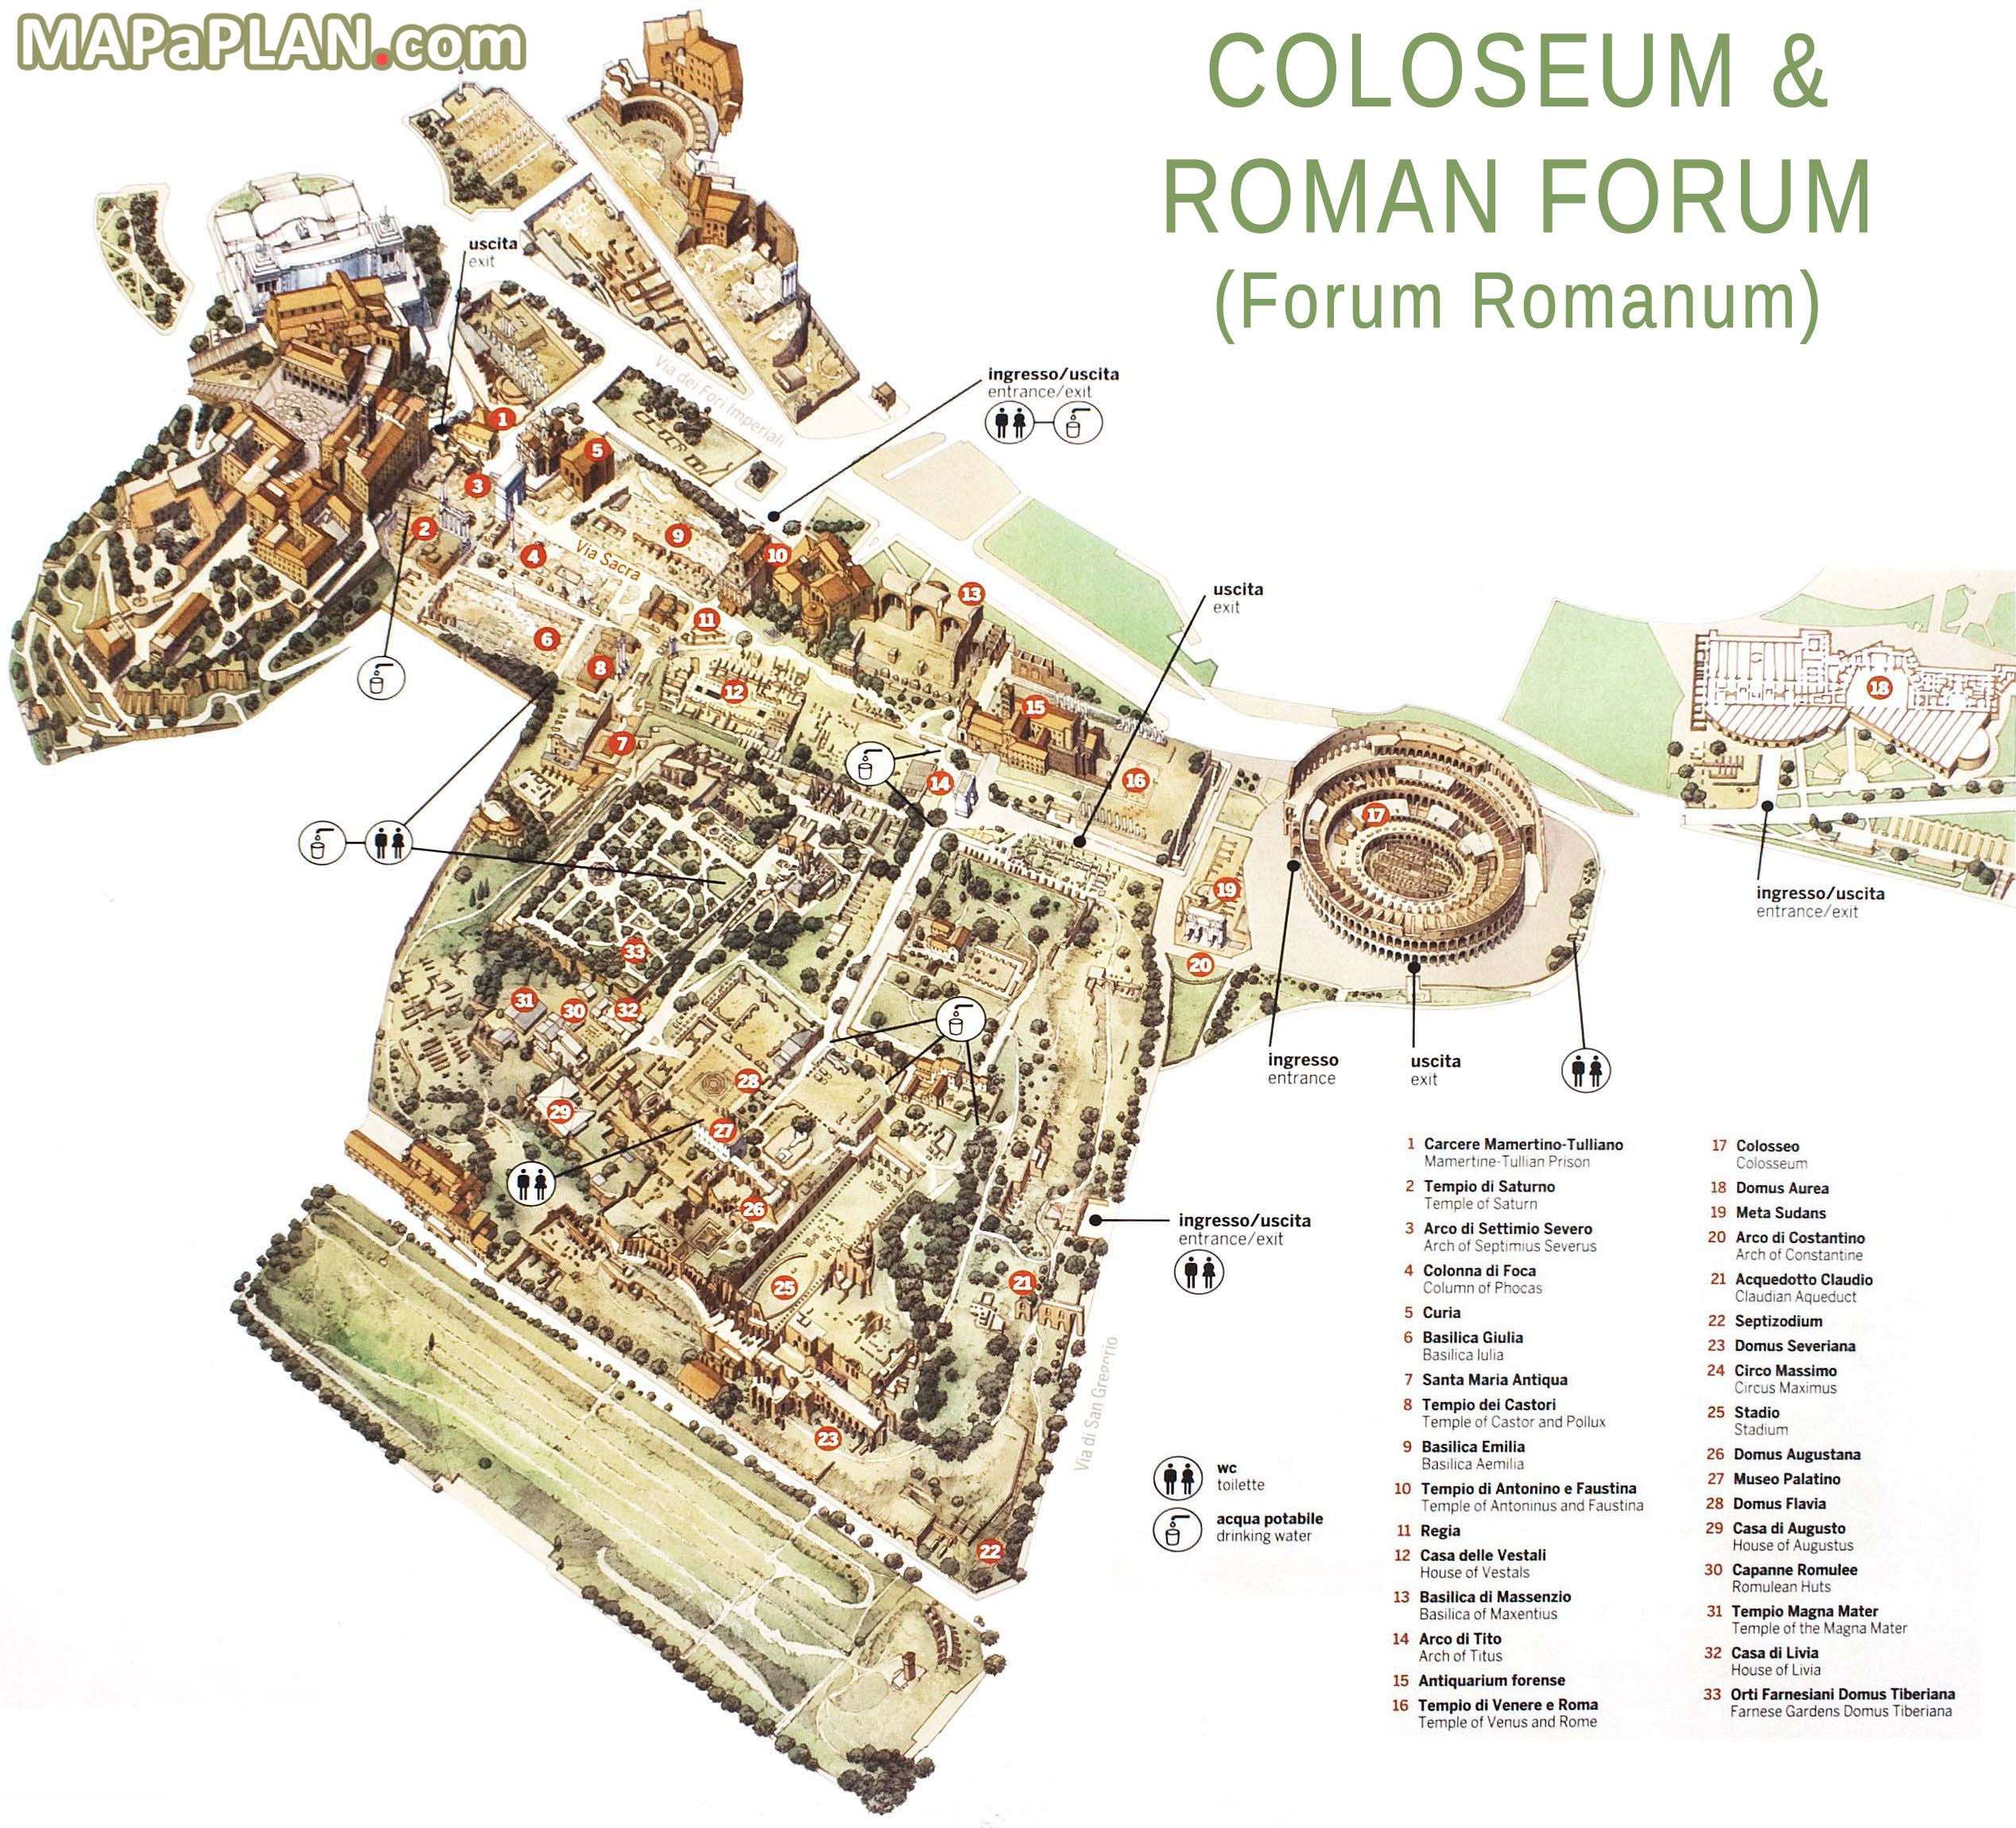 Roman Forum Map Map: High Resolution Map of the Roman Forum Archaeological Site